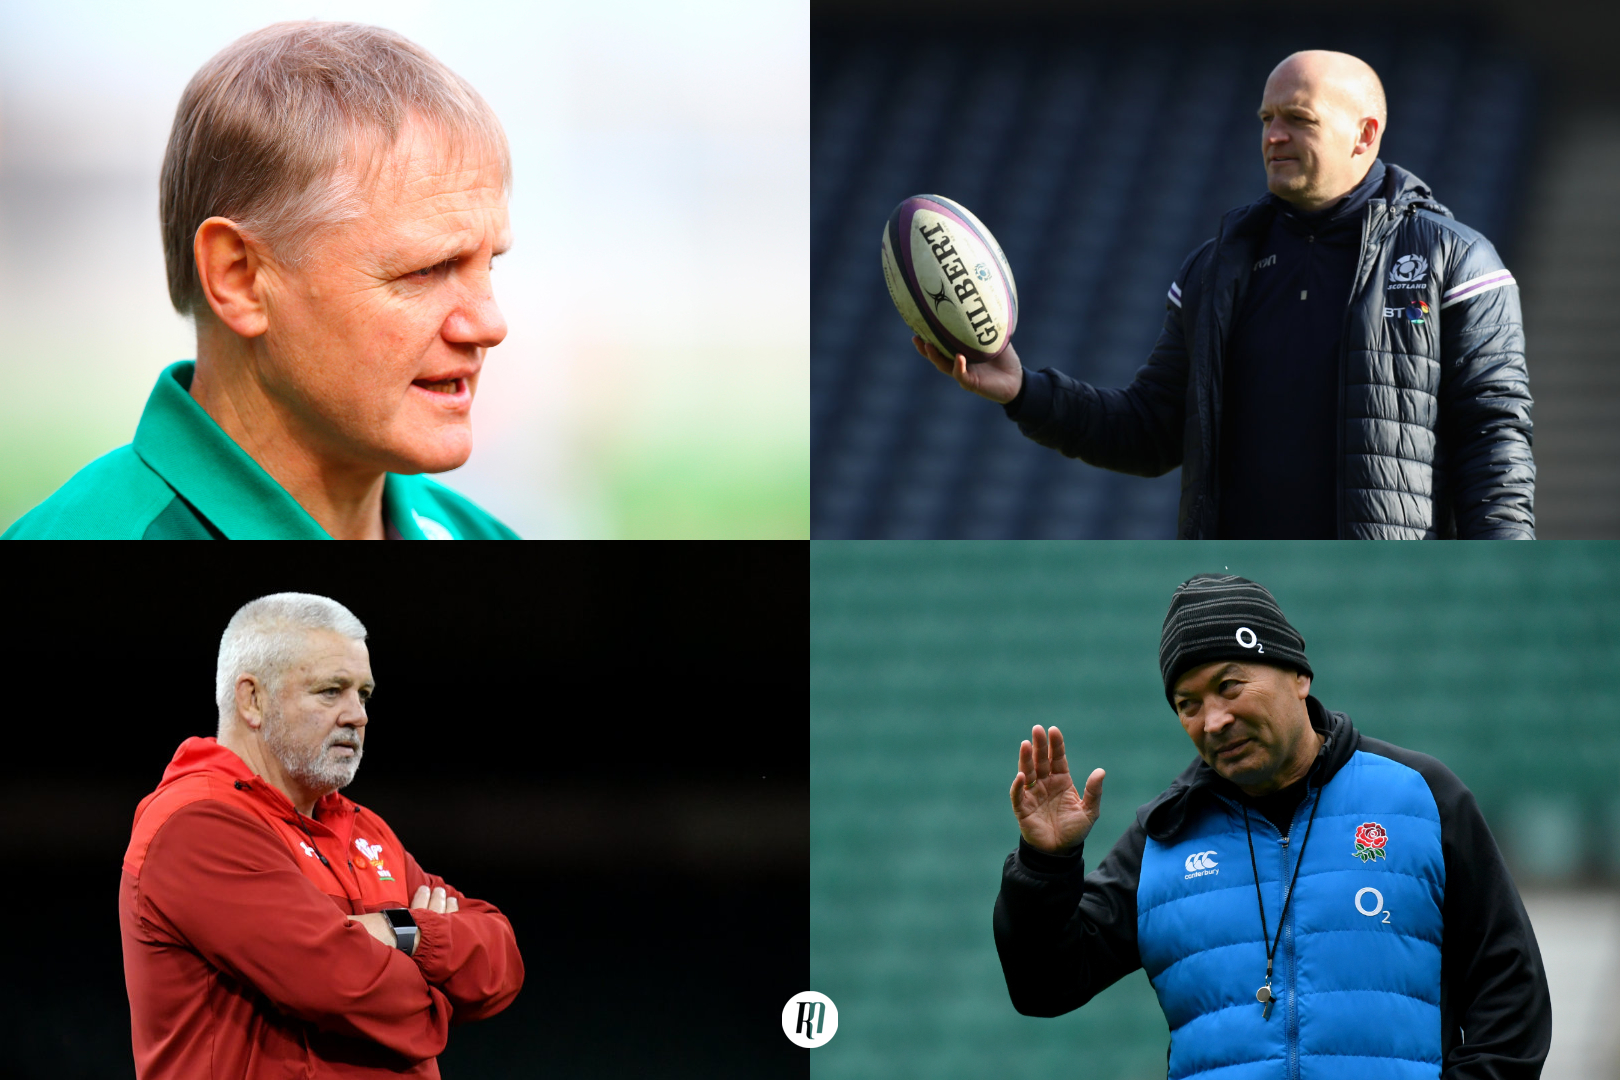 Analysis: Specialist statistical analysis paints ugly picture for England's attack, reinforces Scotland's attacking superiority and Ireland's iron clad game.